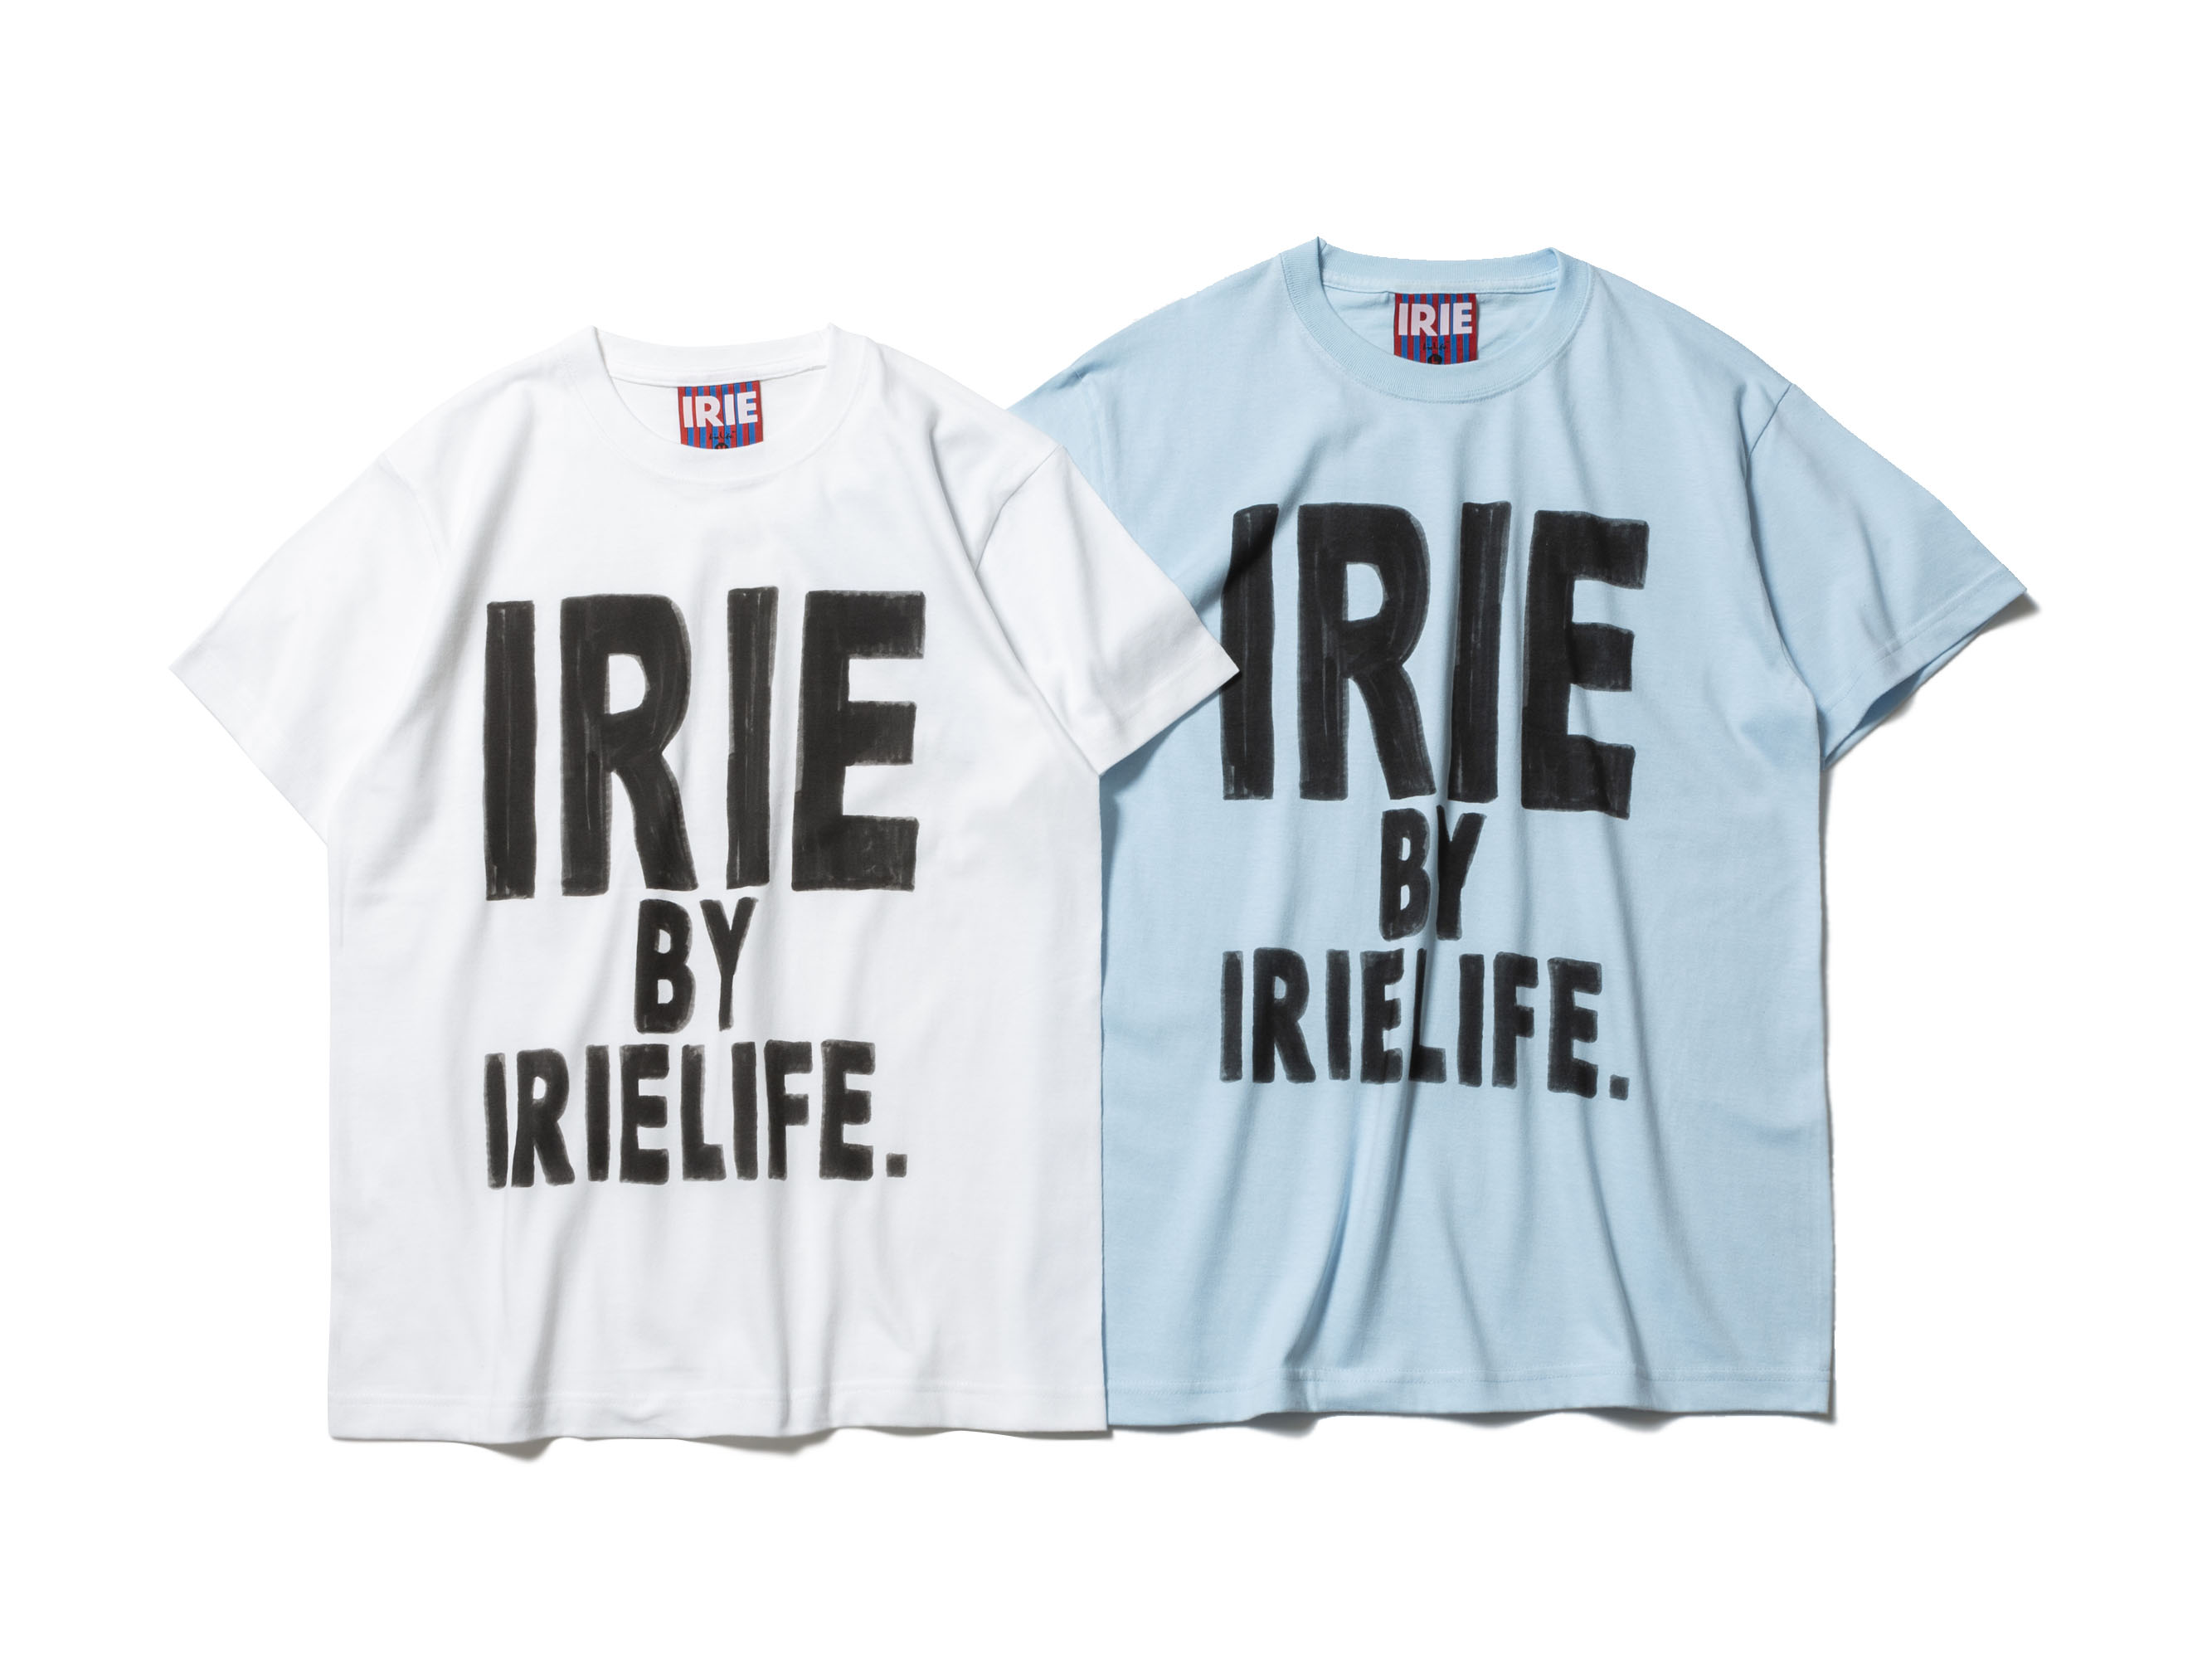 BLEEDING LOGO TEE -IRIE by irielife-